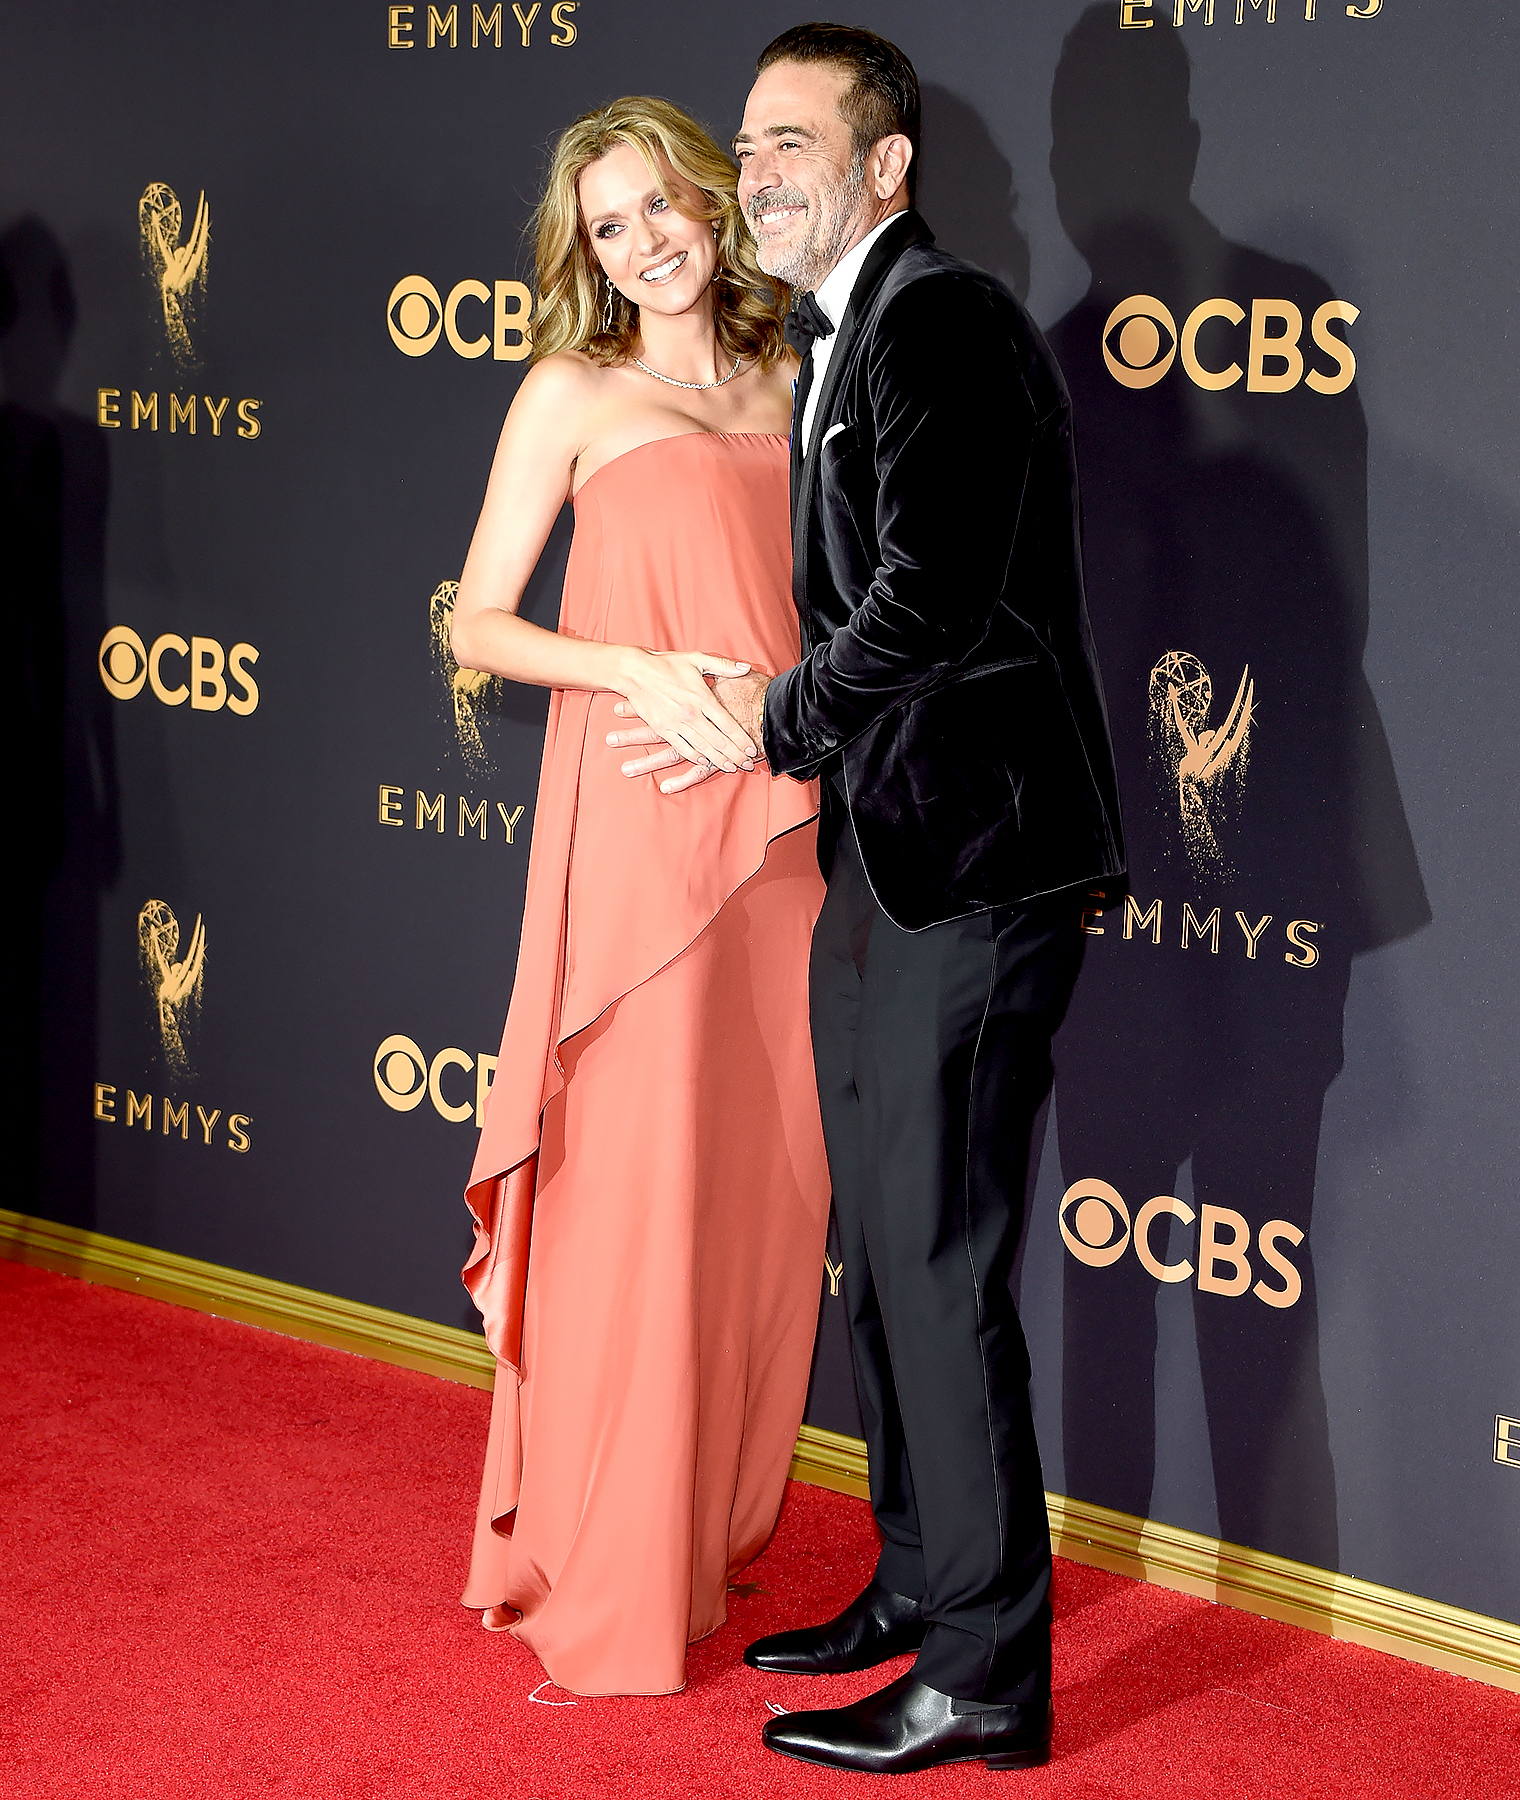 Hilarie Burton and Jeffrey Dean Morgan attend the 69th Annual Primetime Emmy Awards at Microsoft Theater on September 17, 2017 in Los Angeles, California.